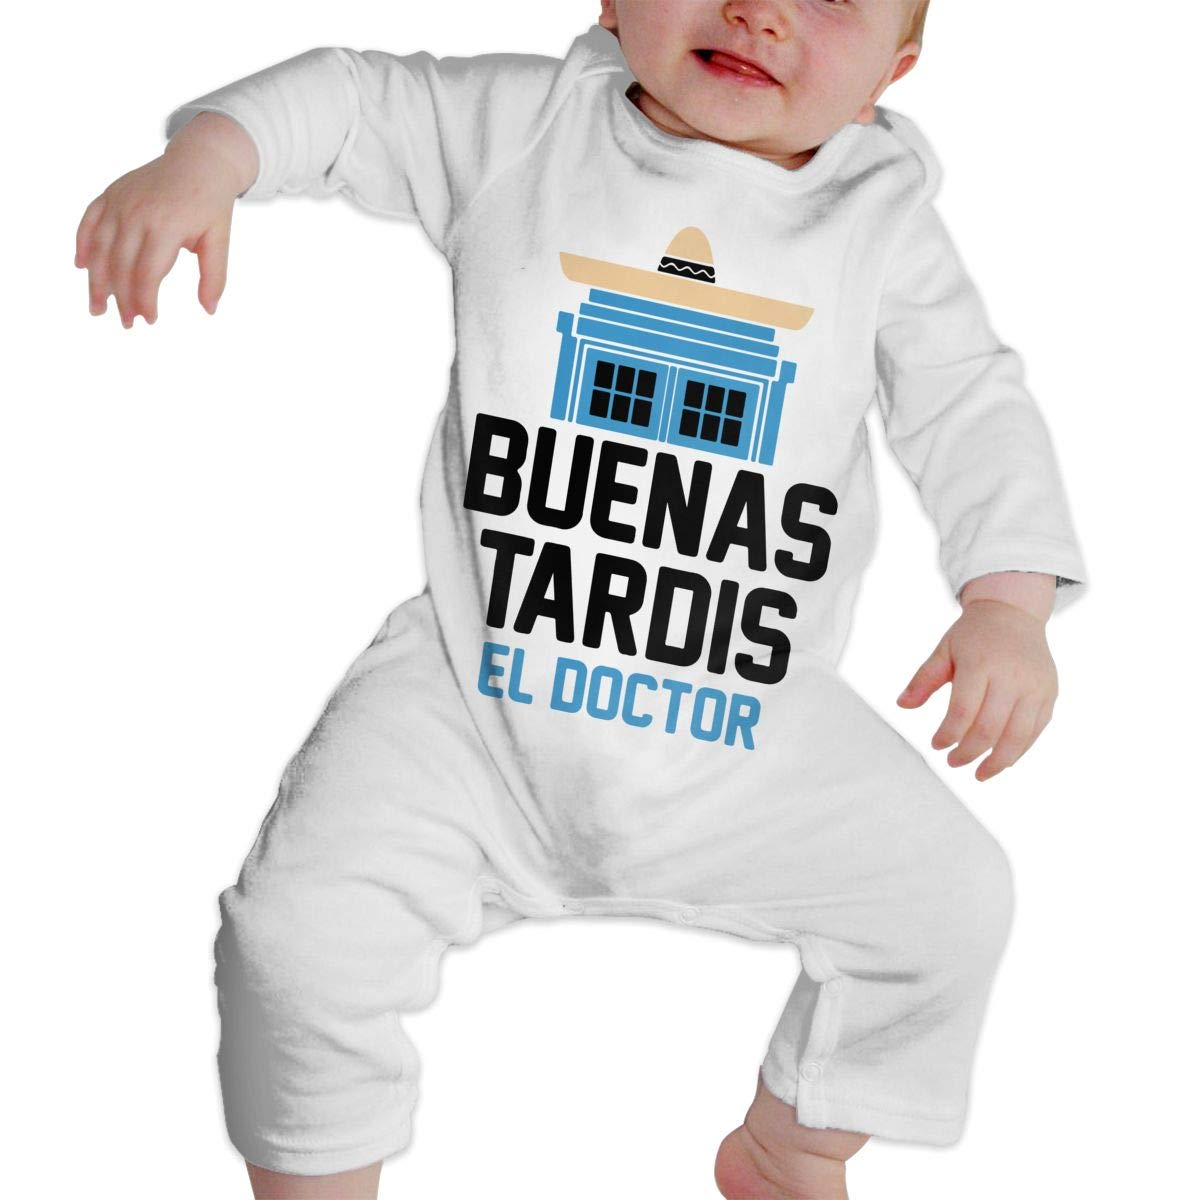 A1BY-5US Infant Babys Cotton Long Sleeve Buenas Tardis Baby Clothes One-Piece Romper Clothes